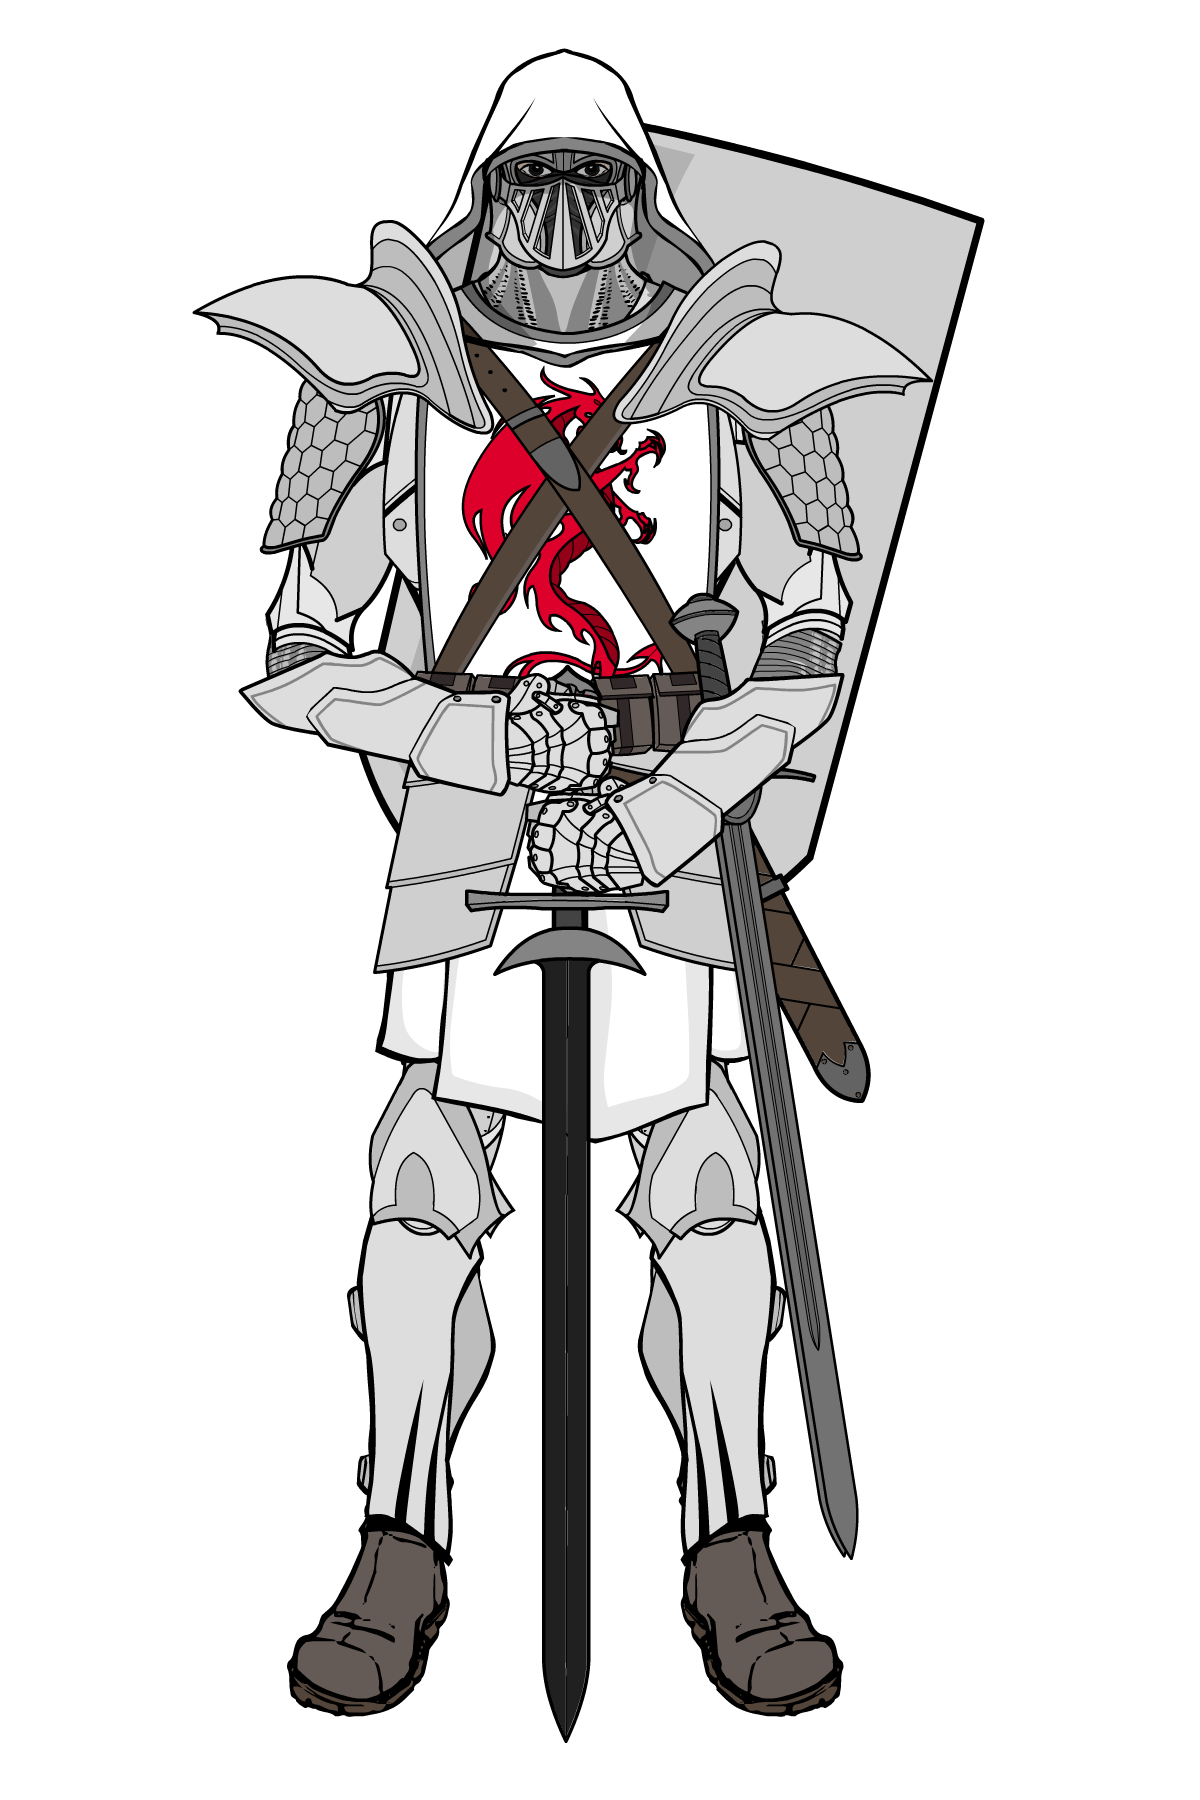 http://www.heromachine.com/wp-content/legacy/forum-image-uploads/mr-nobody/2014/01/Knight-2-Pose-3.png